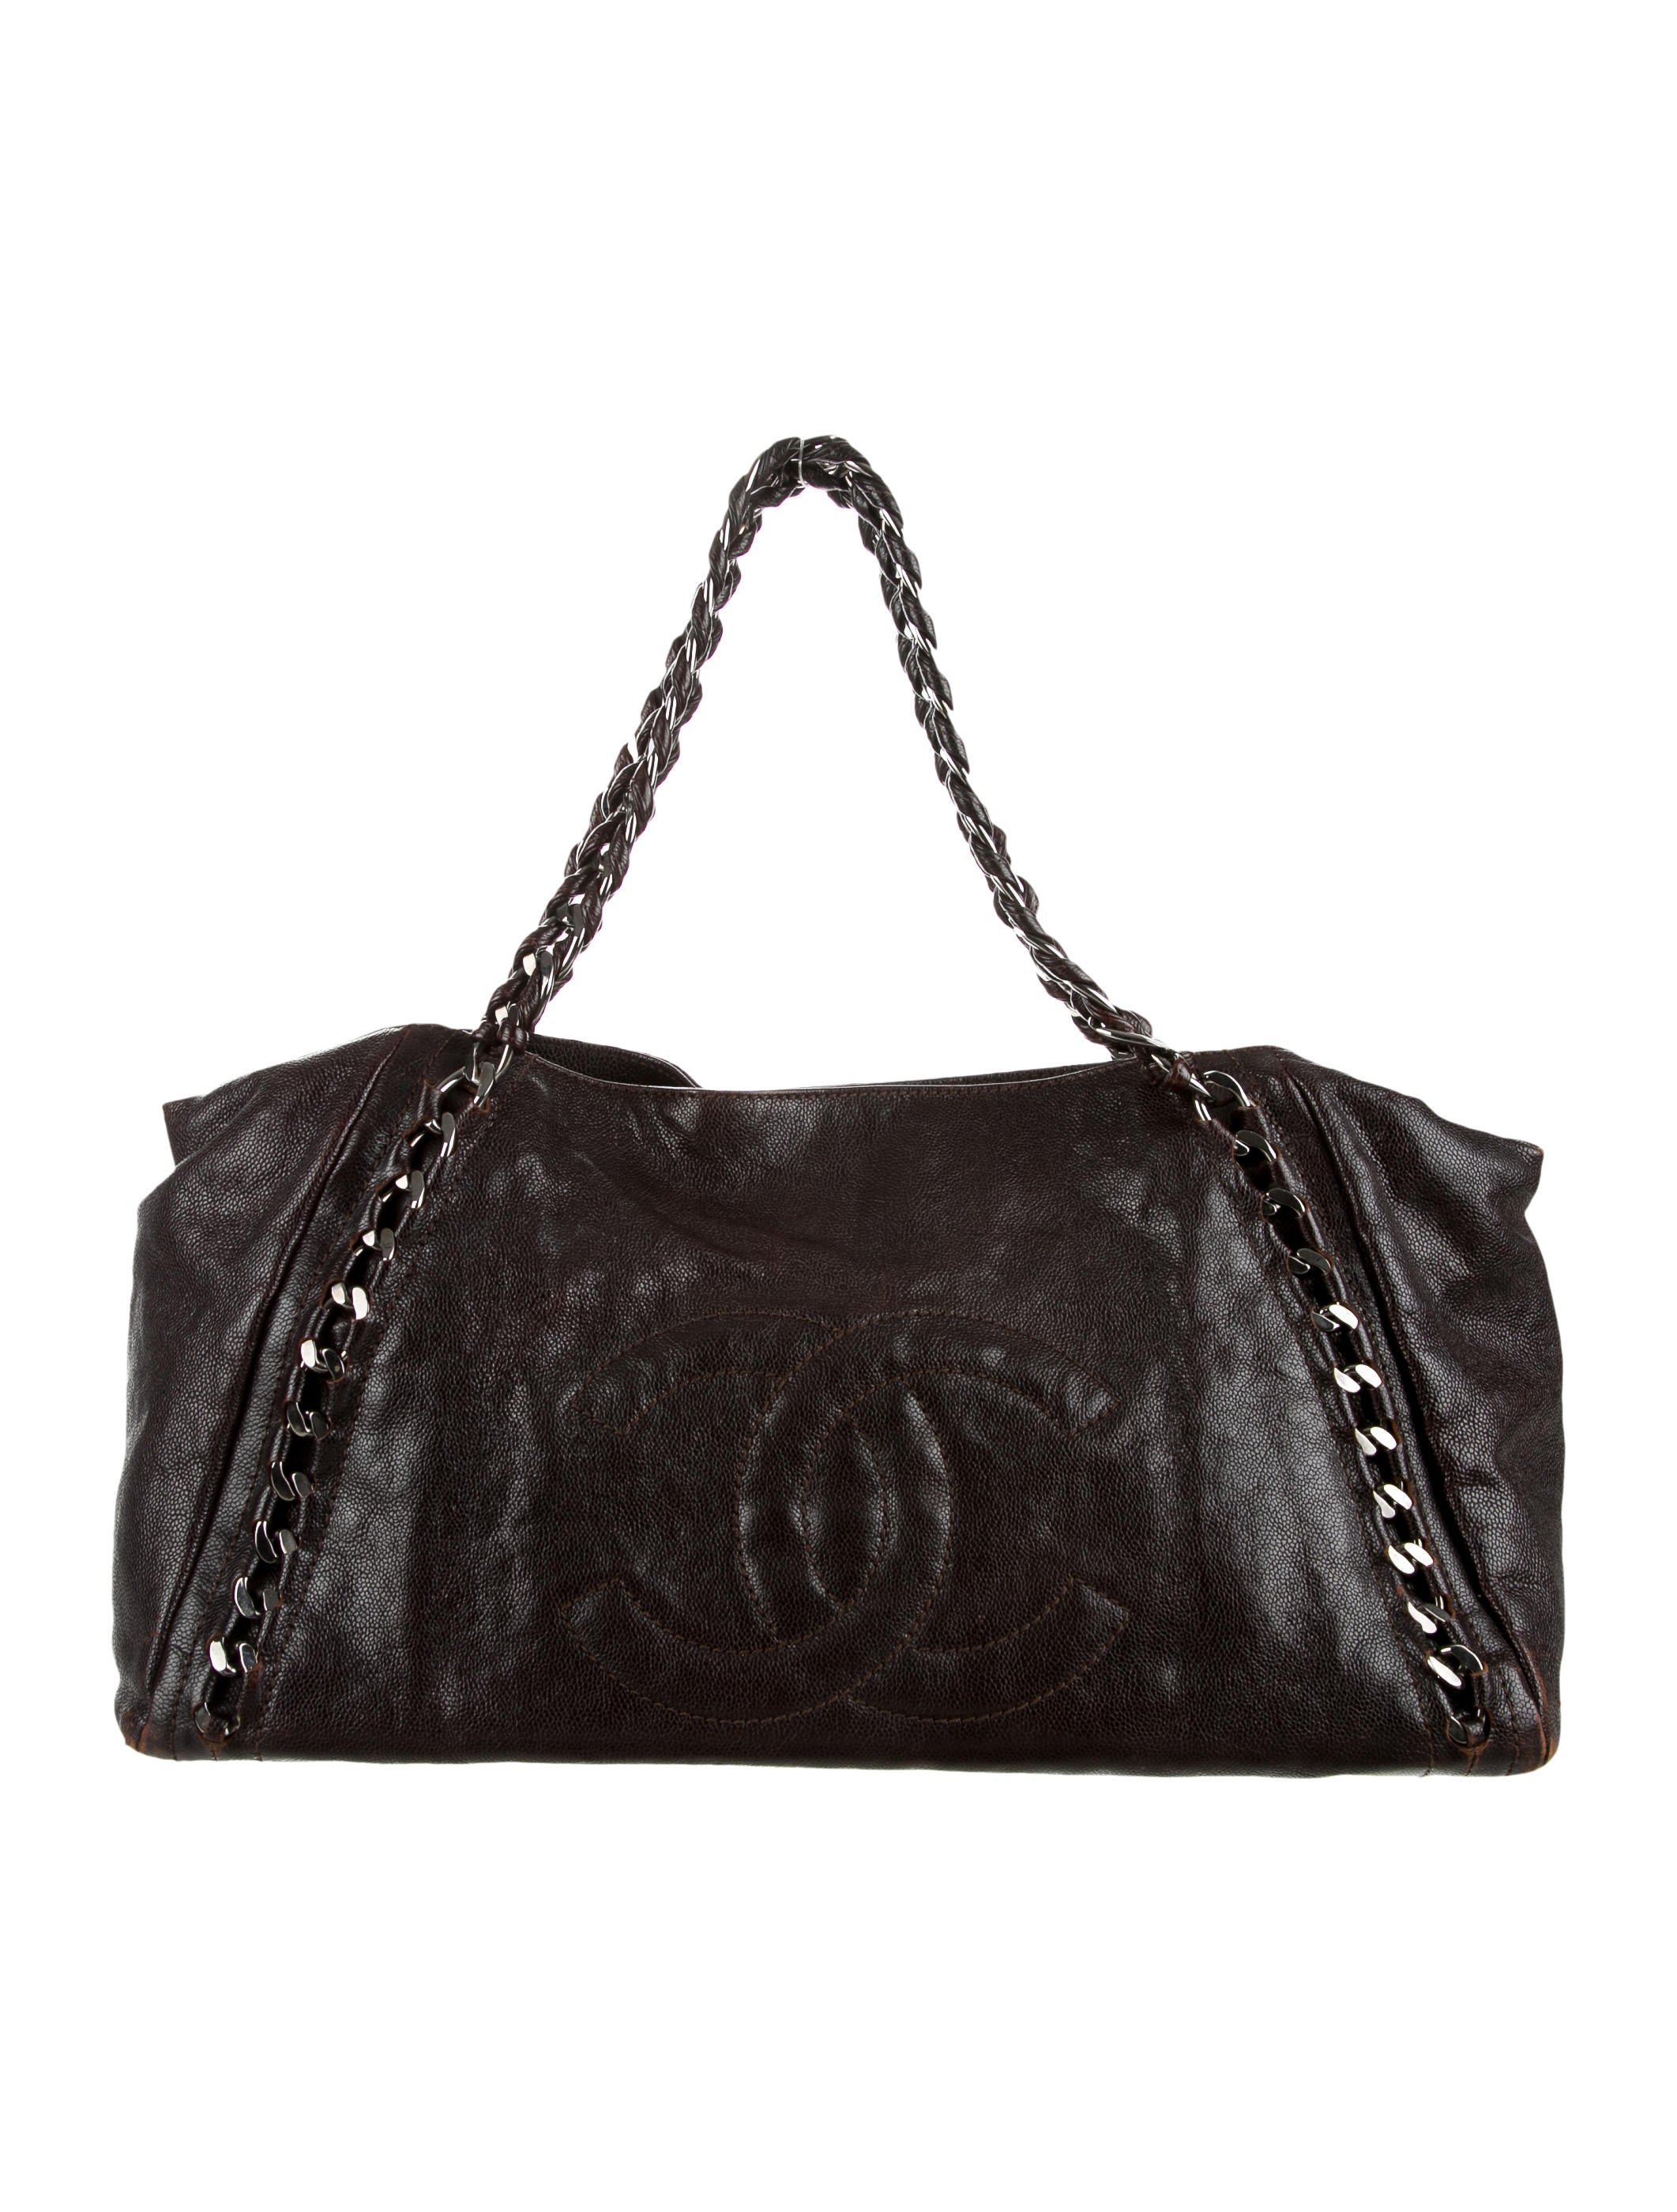 76cc54270f7a Chanel Modern Chain Tote Bag | Stanford Center for Opportunity ...